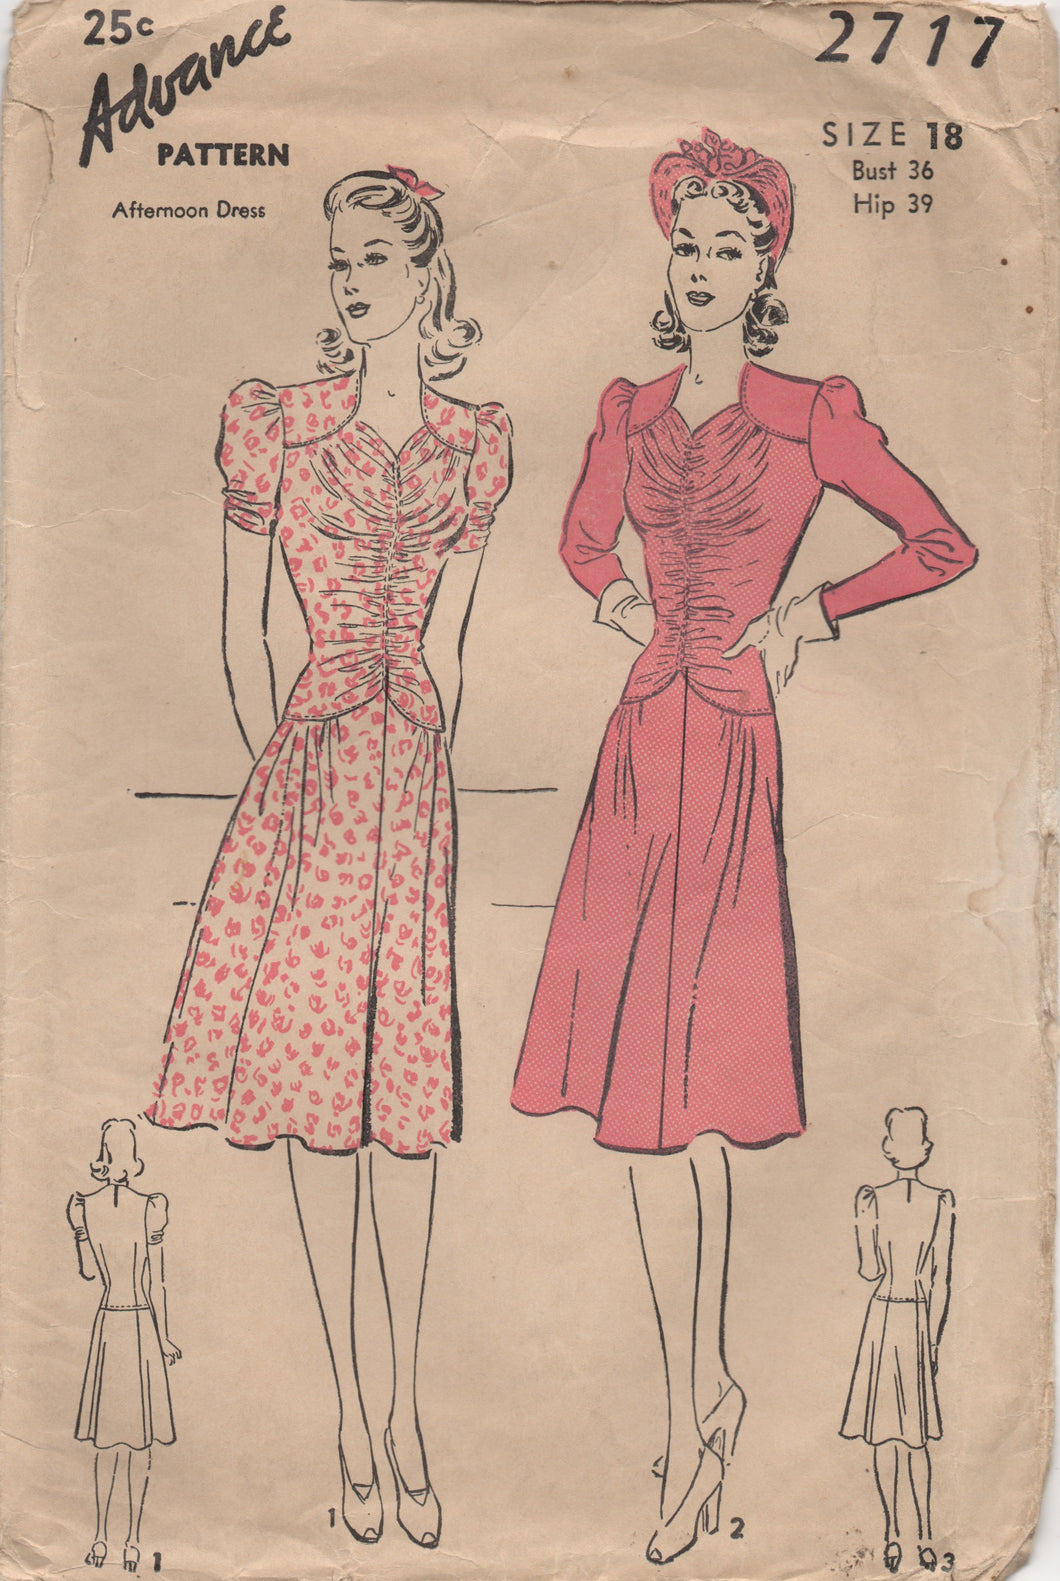 1940's Advance One Piece Dress with Gathered Bodice and Two Sleeve Styles - Bust 36